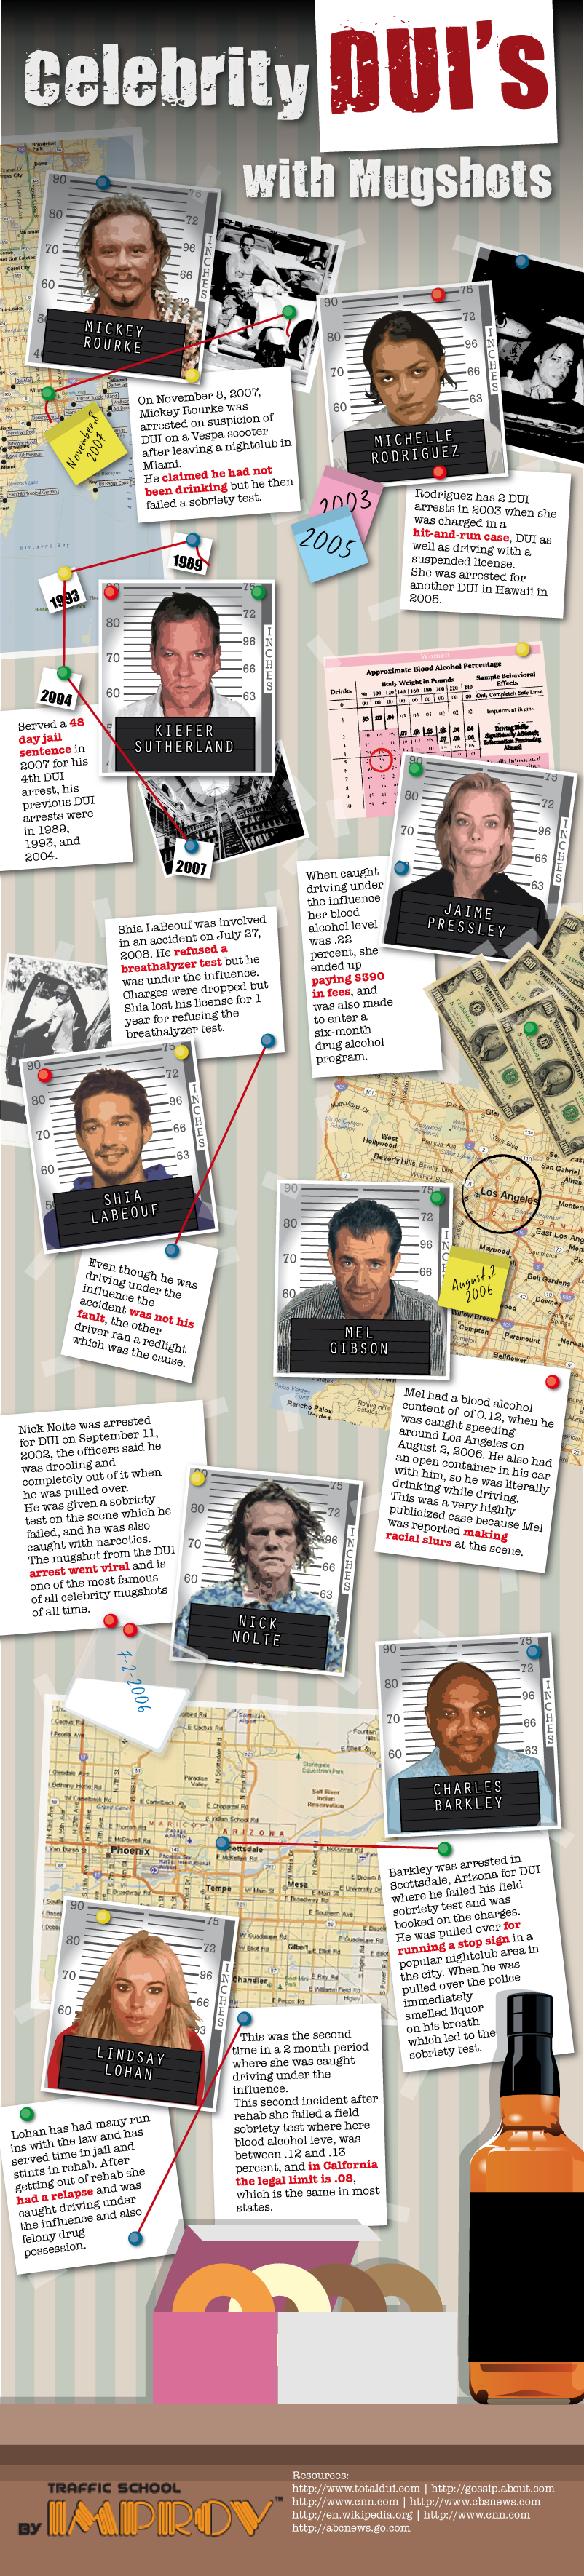 Celebrity DUIs with Mugshots [Infographic]